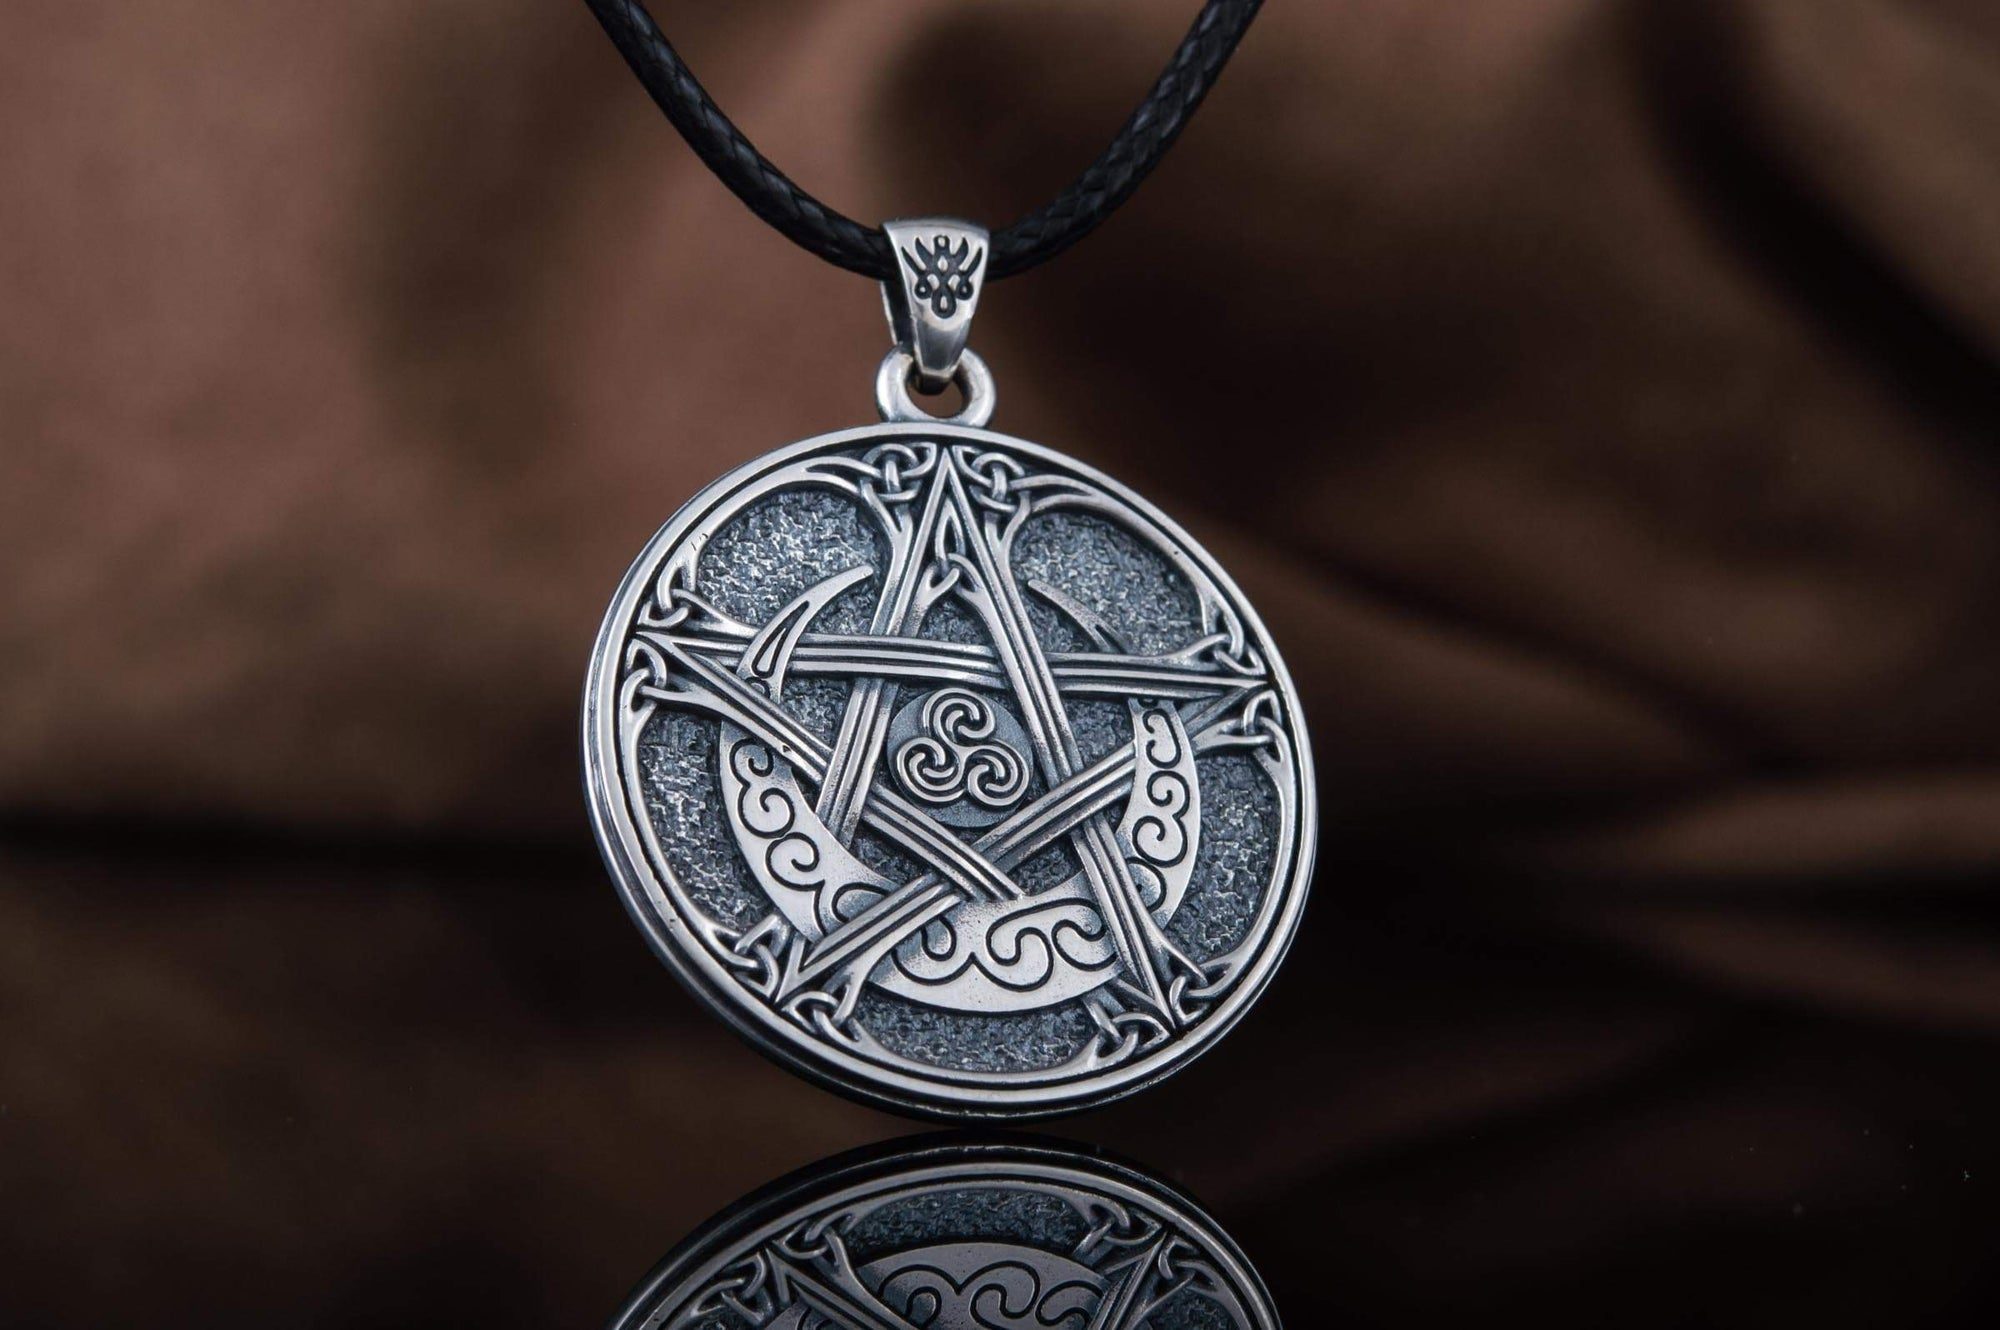 Pendants & Necklaces Wiccan Knotwork Pentagram Sterling Silver Pendant with Triskelion Ancient Treasures Ancientreasures Viking Odin Thor Mjolnir Celtic Ancient Egypt Norse Norse Mythology